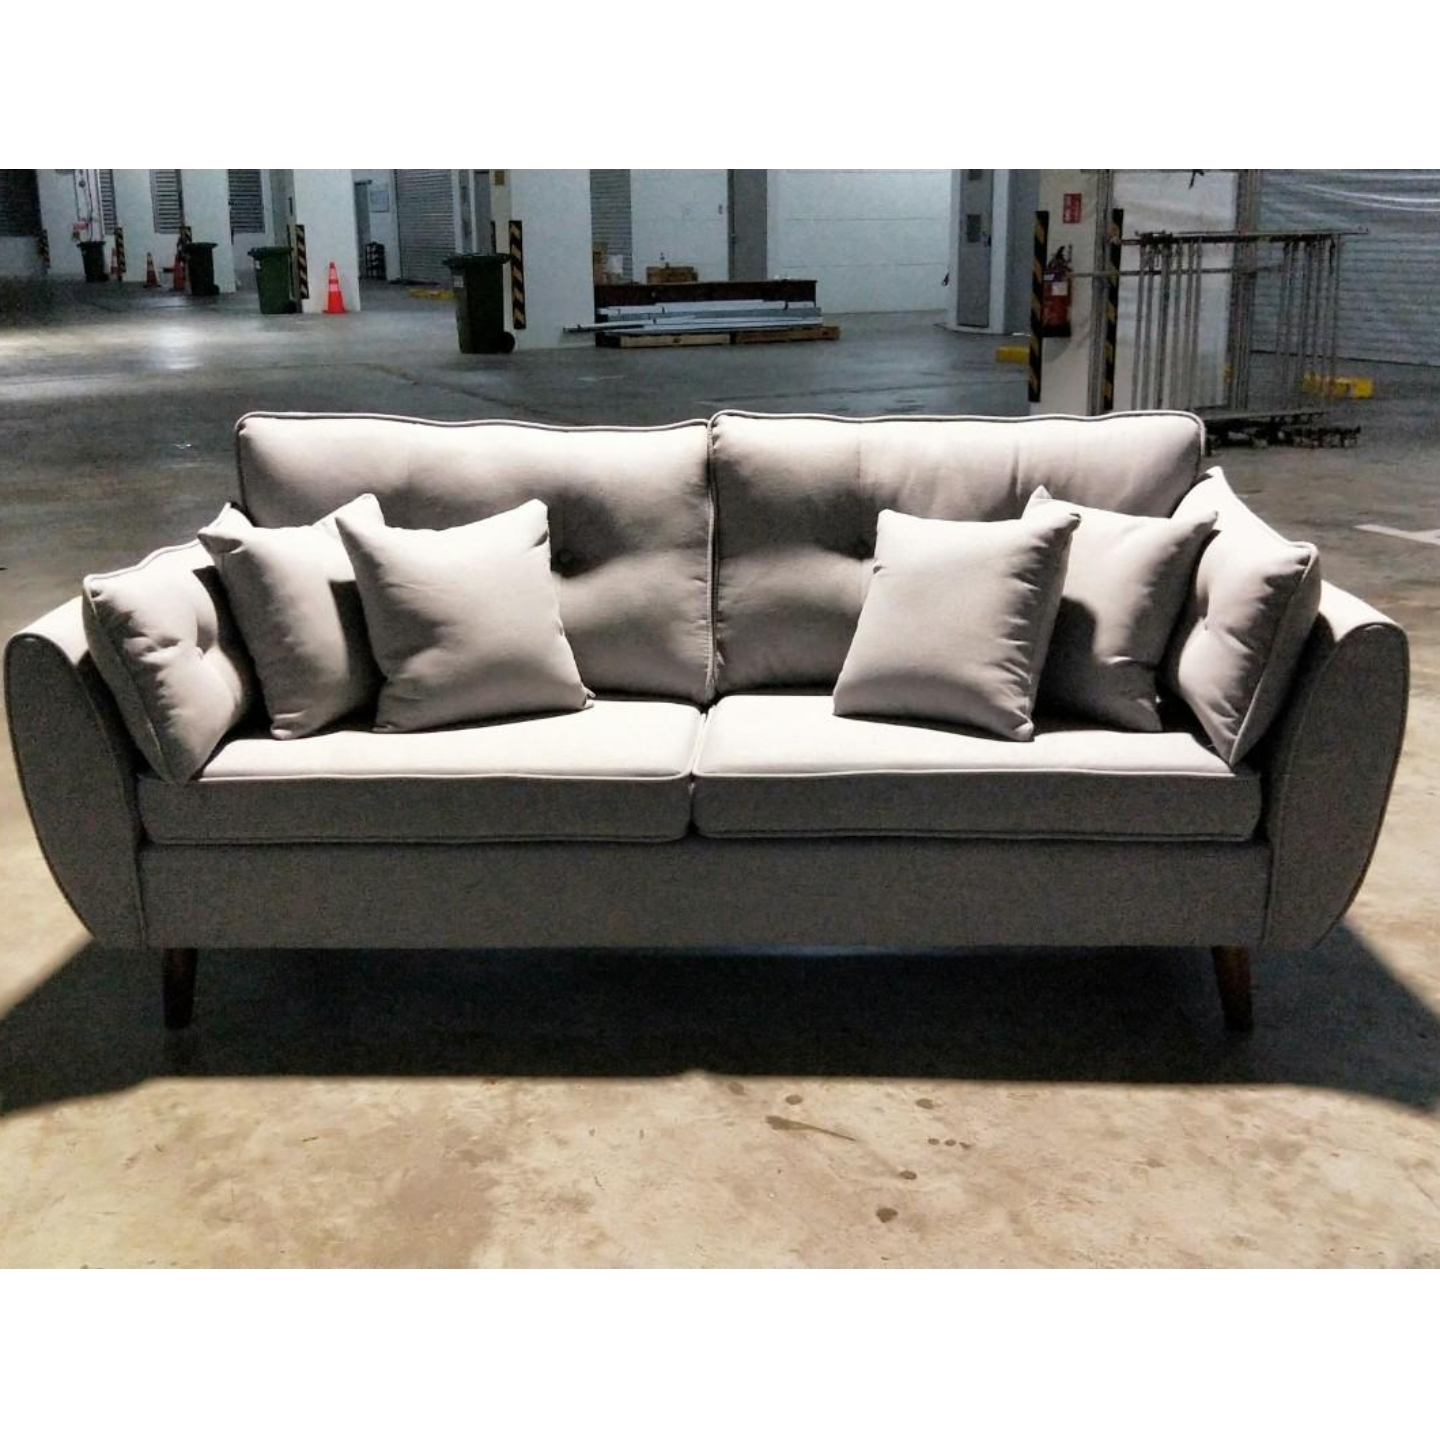 MOVICK Series Designer 3 Seater Sofa in GREY FABRIC